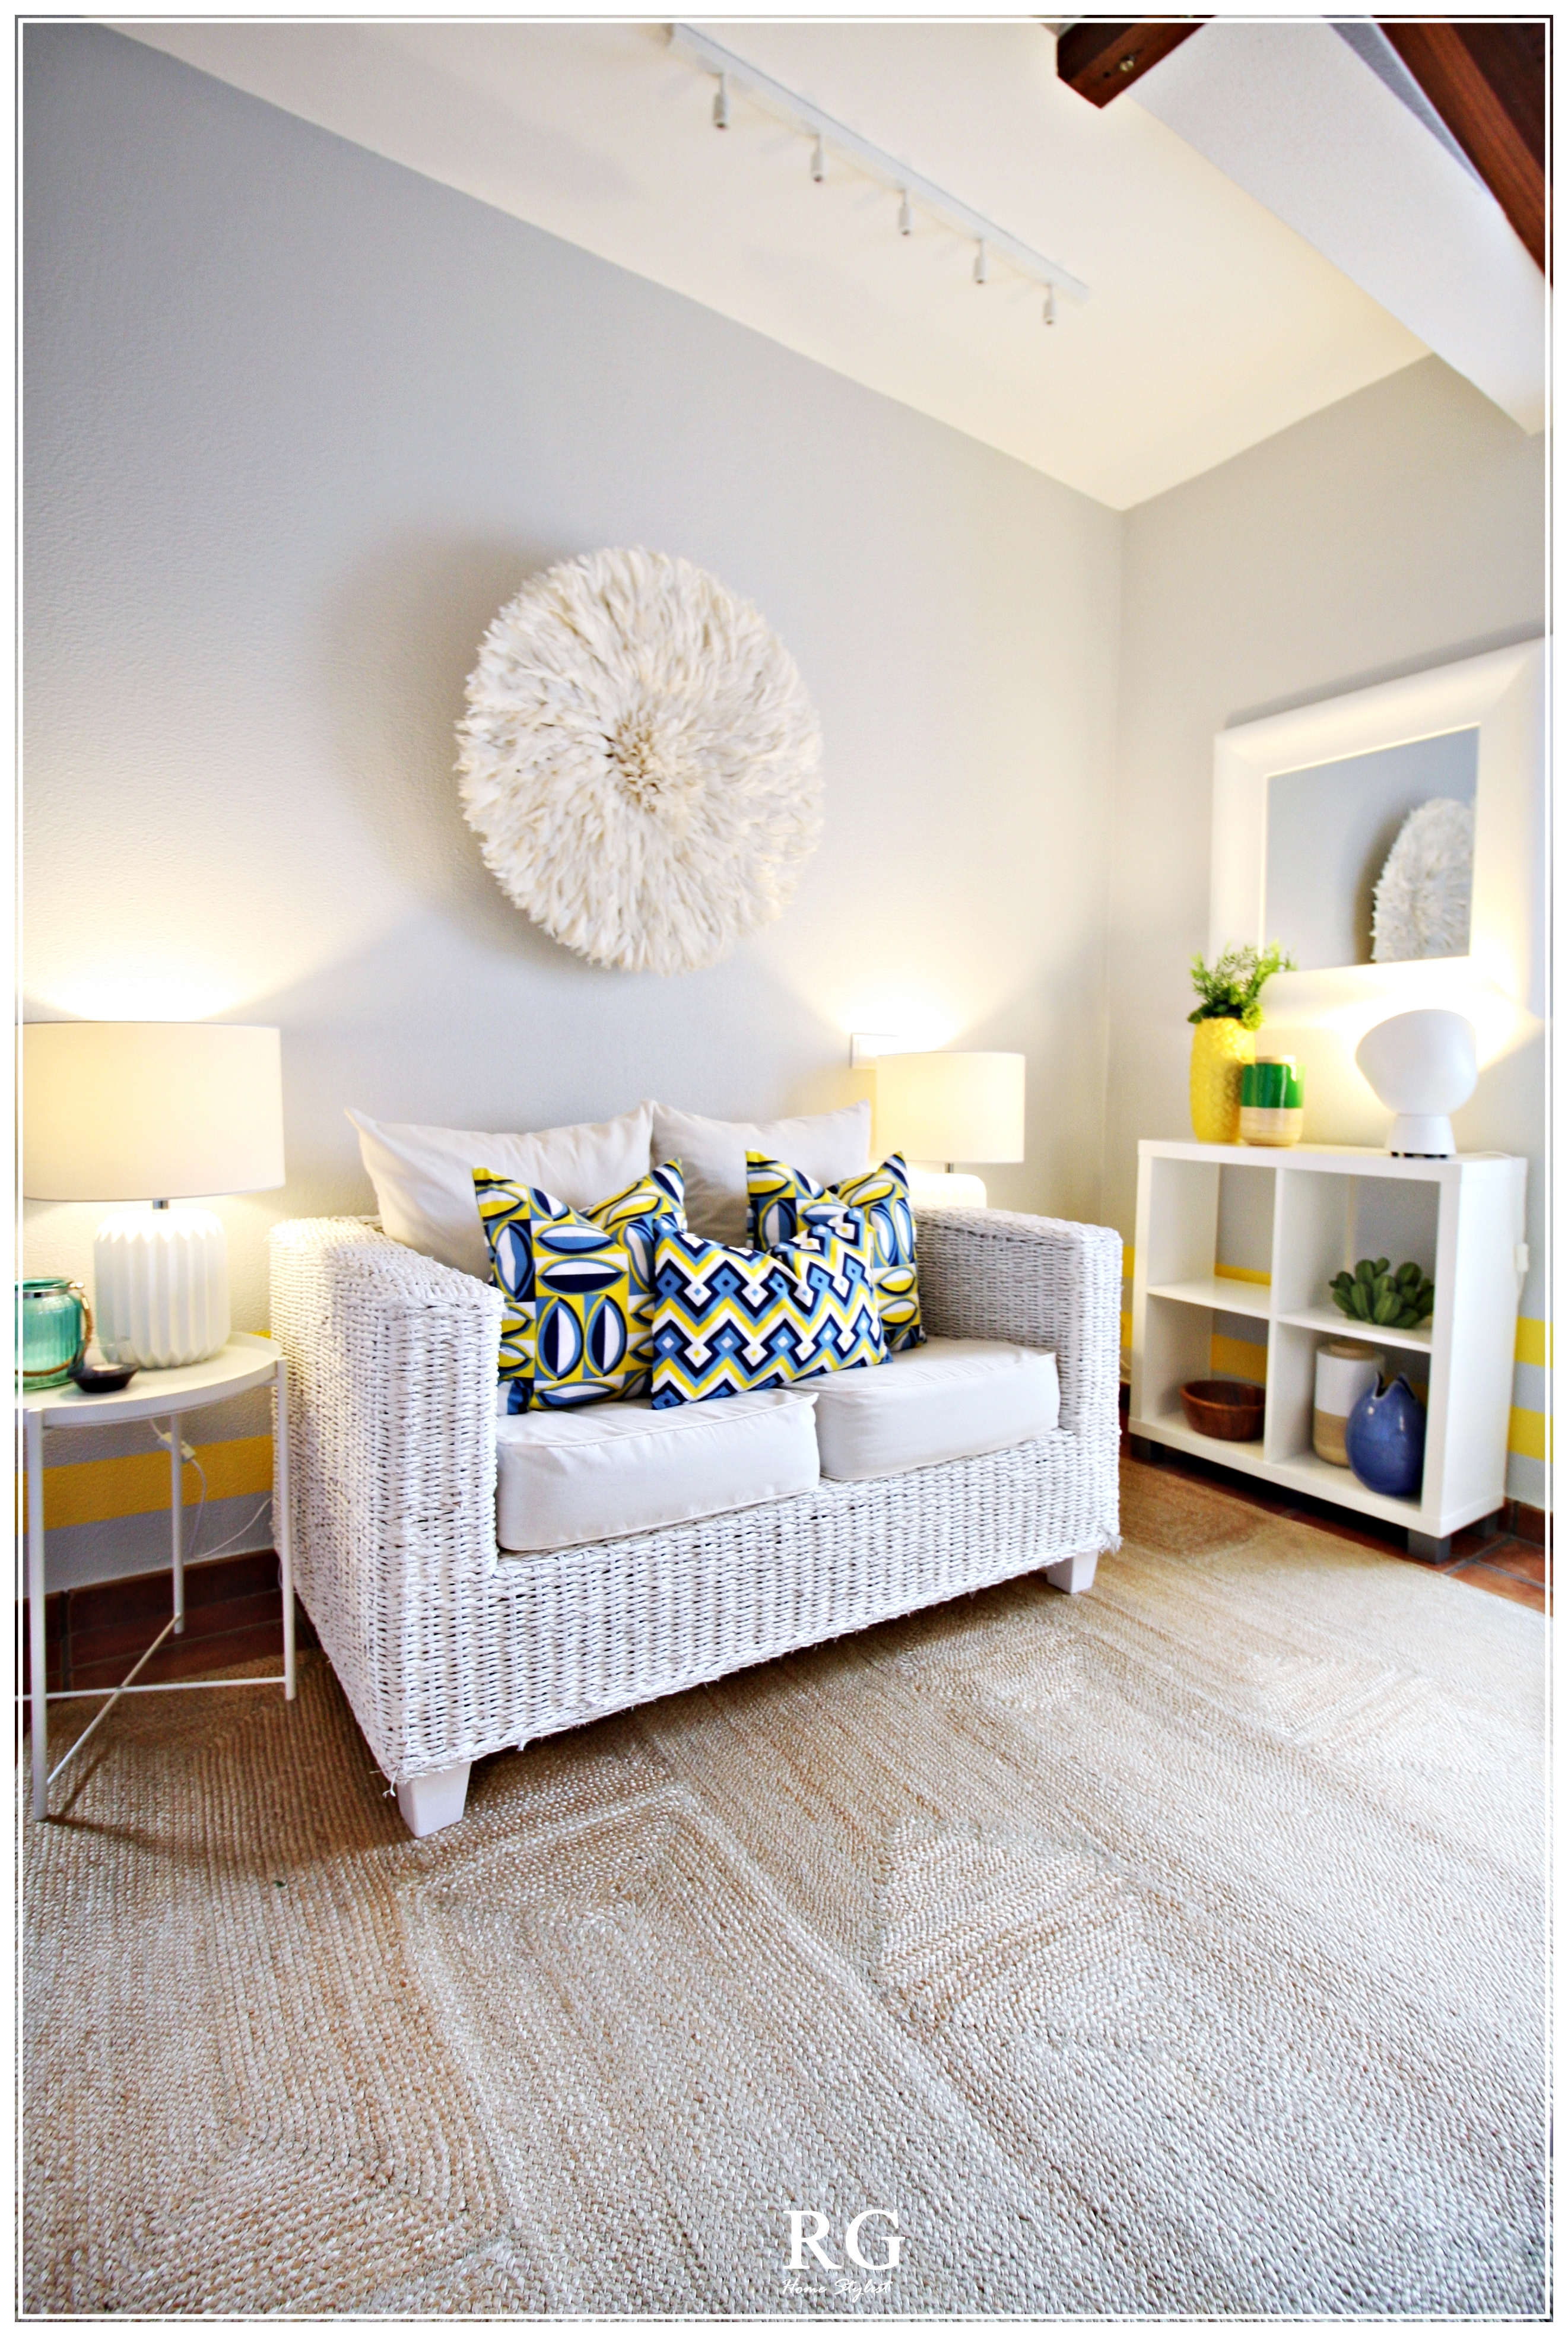 Projeto - The White & Yellow TV Room